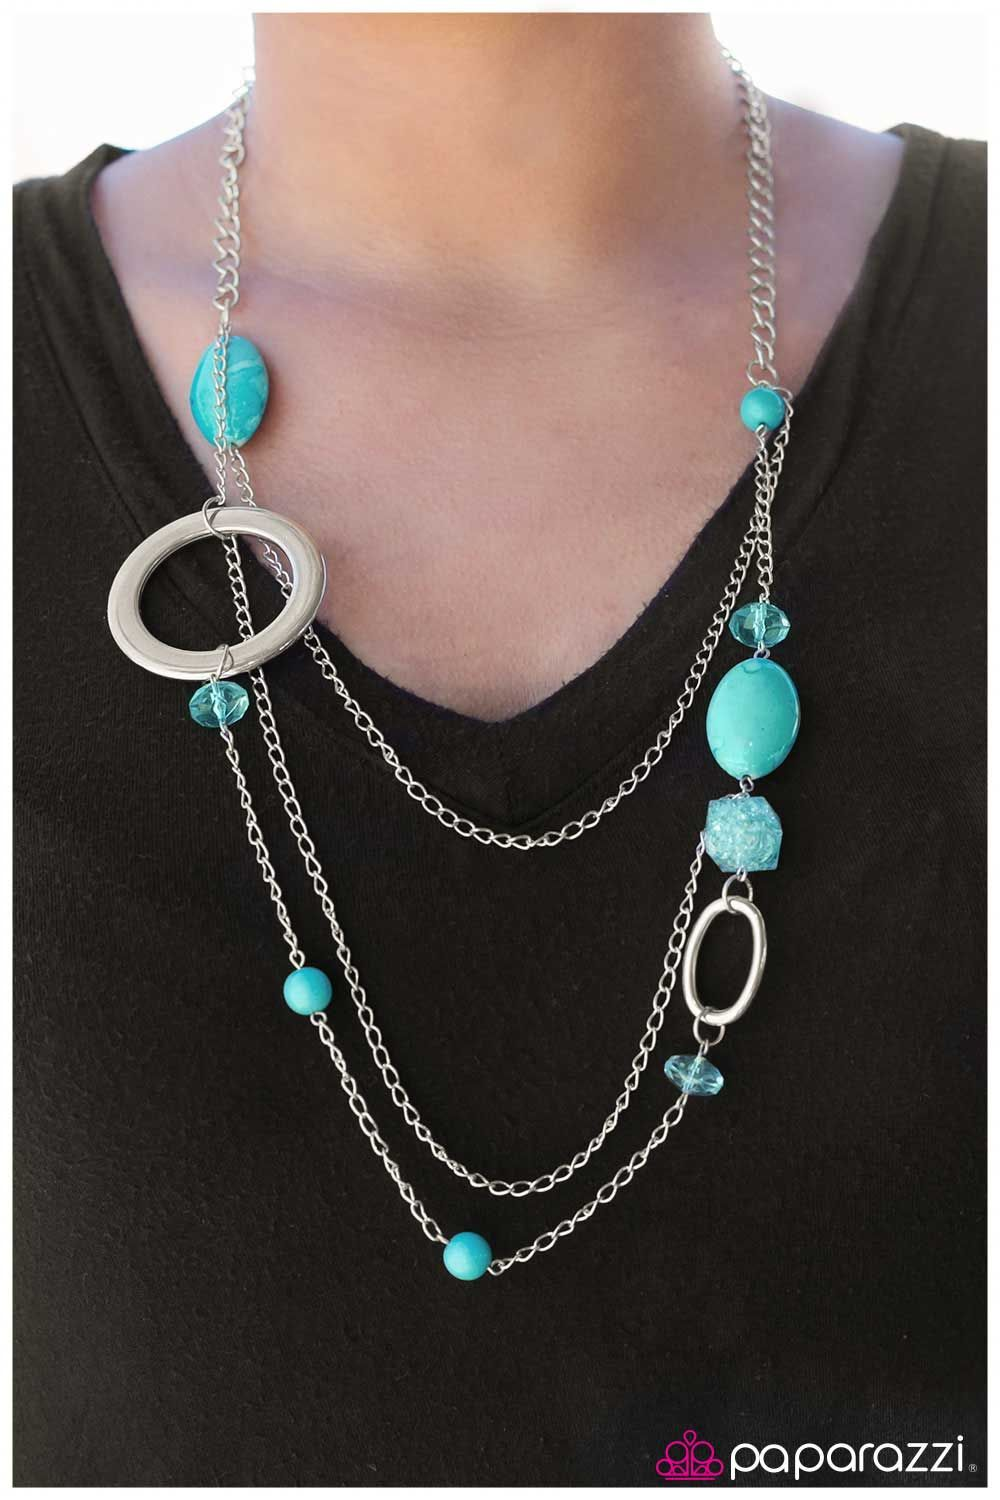 More Necklaces Like This Www Paparazziaccessories Com